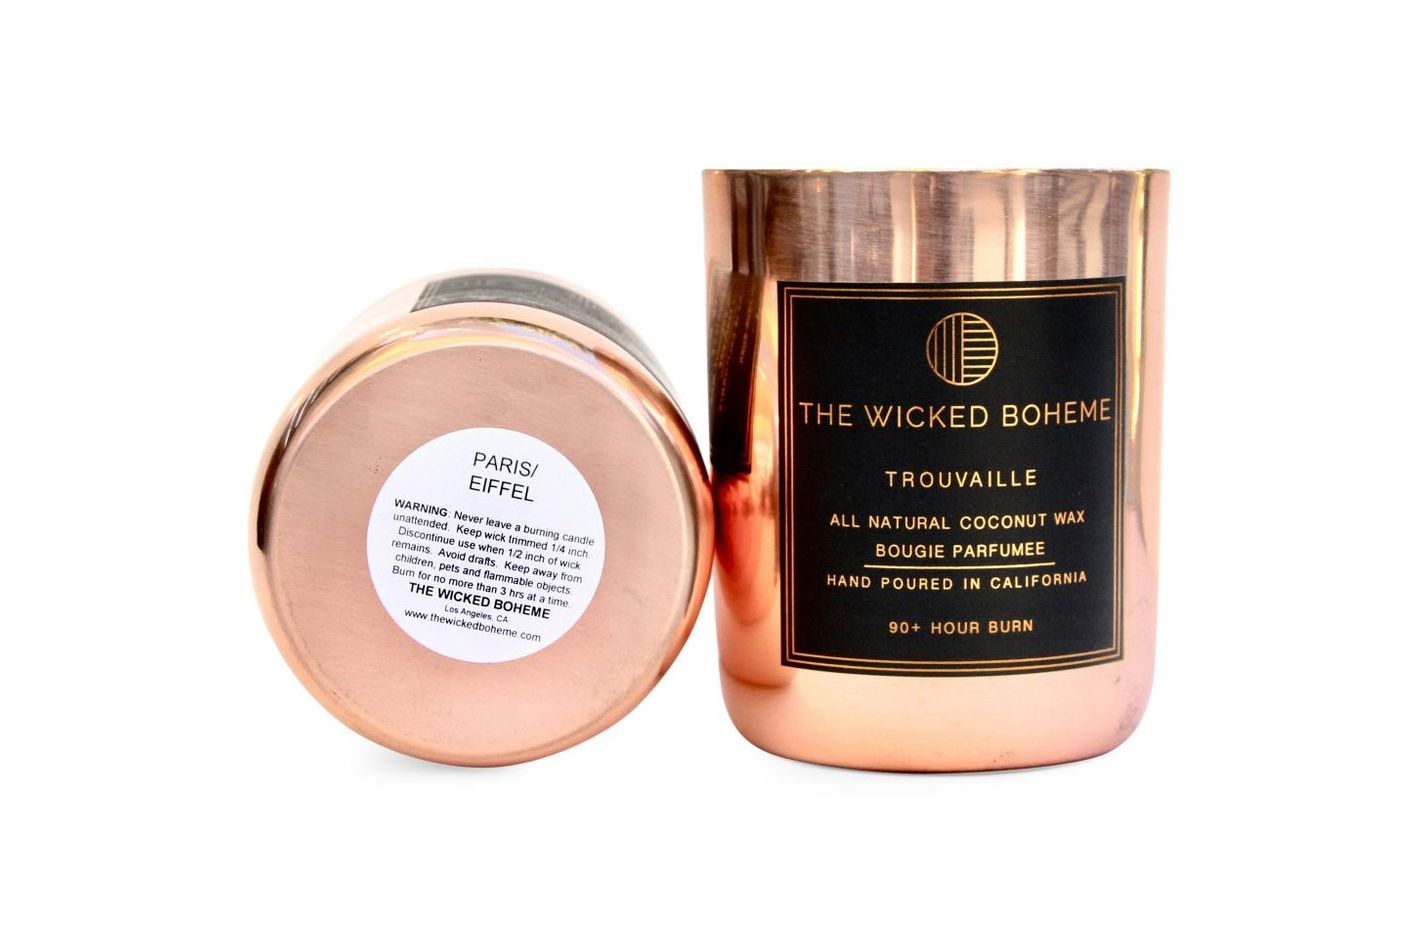 The Wicked Boheme Paris Coconut Wax Candle